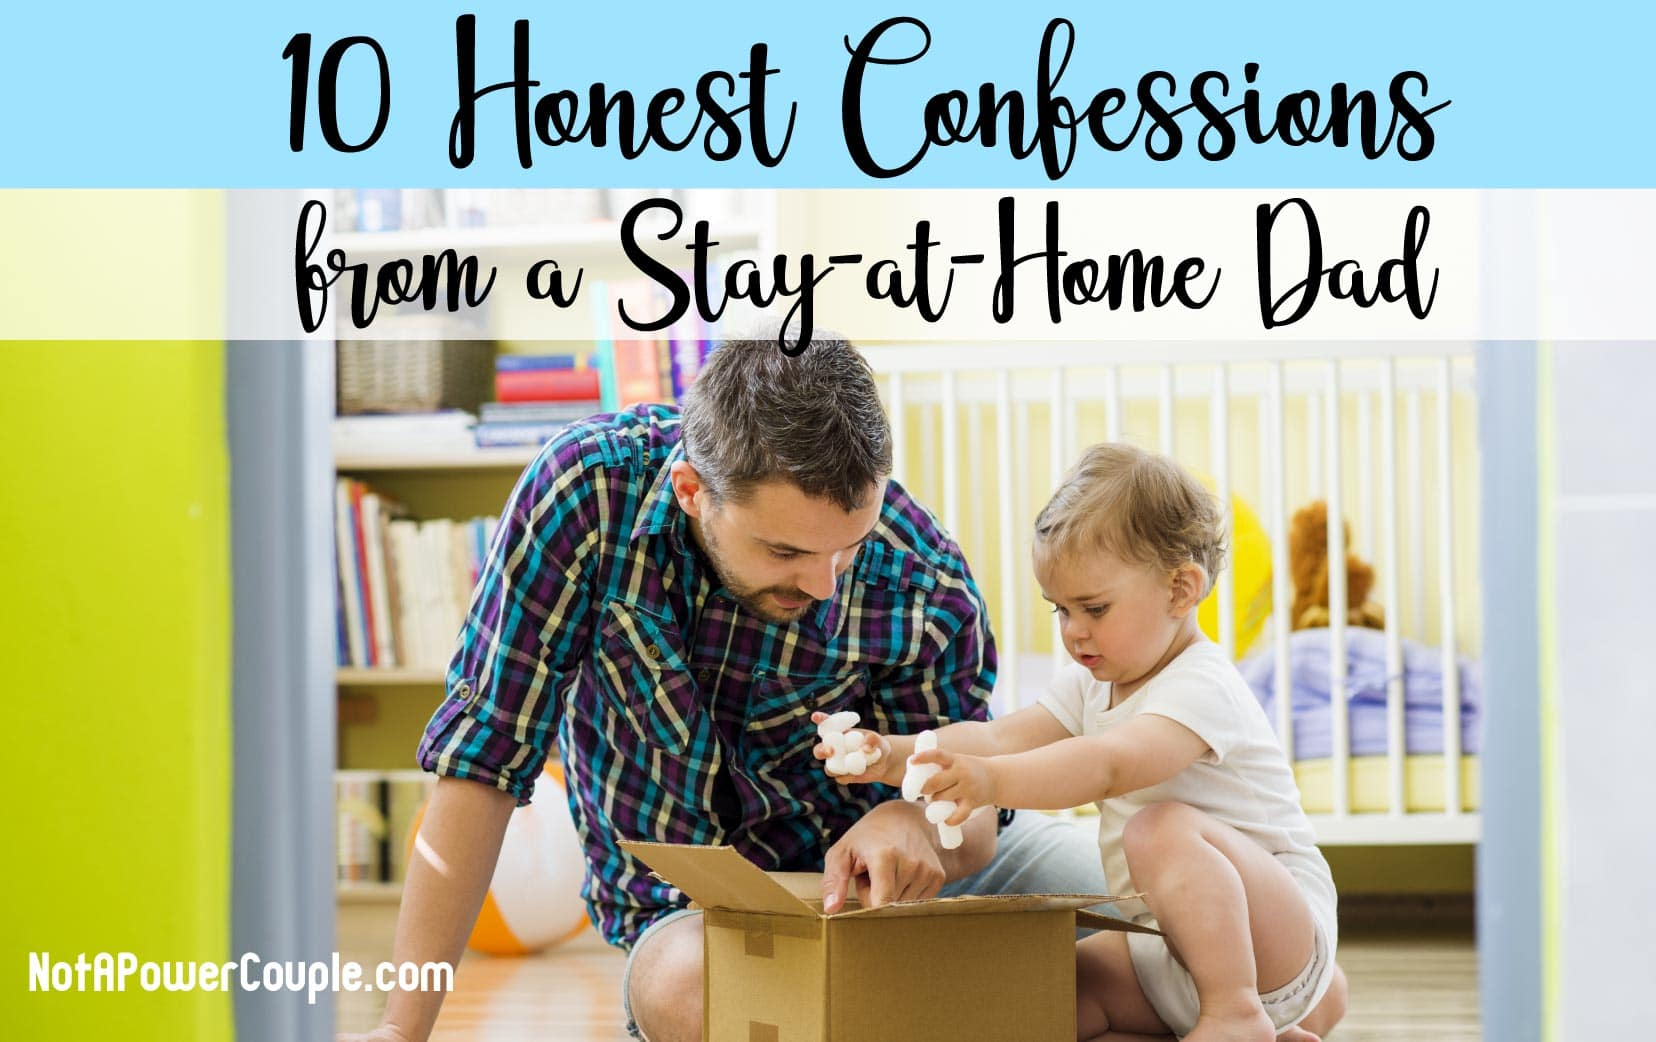 10 Honest Confessions from a Stay at Home Dad